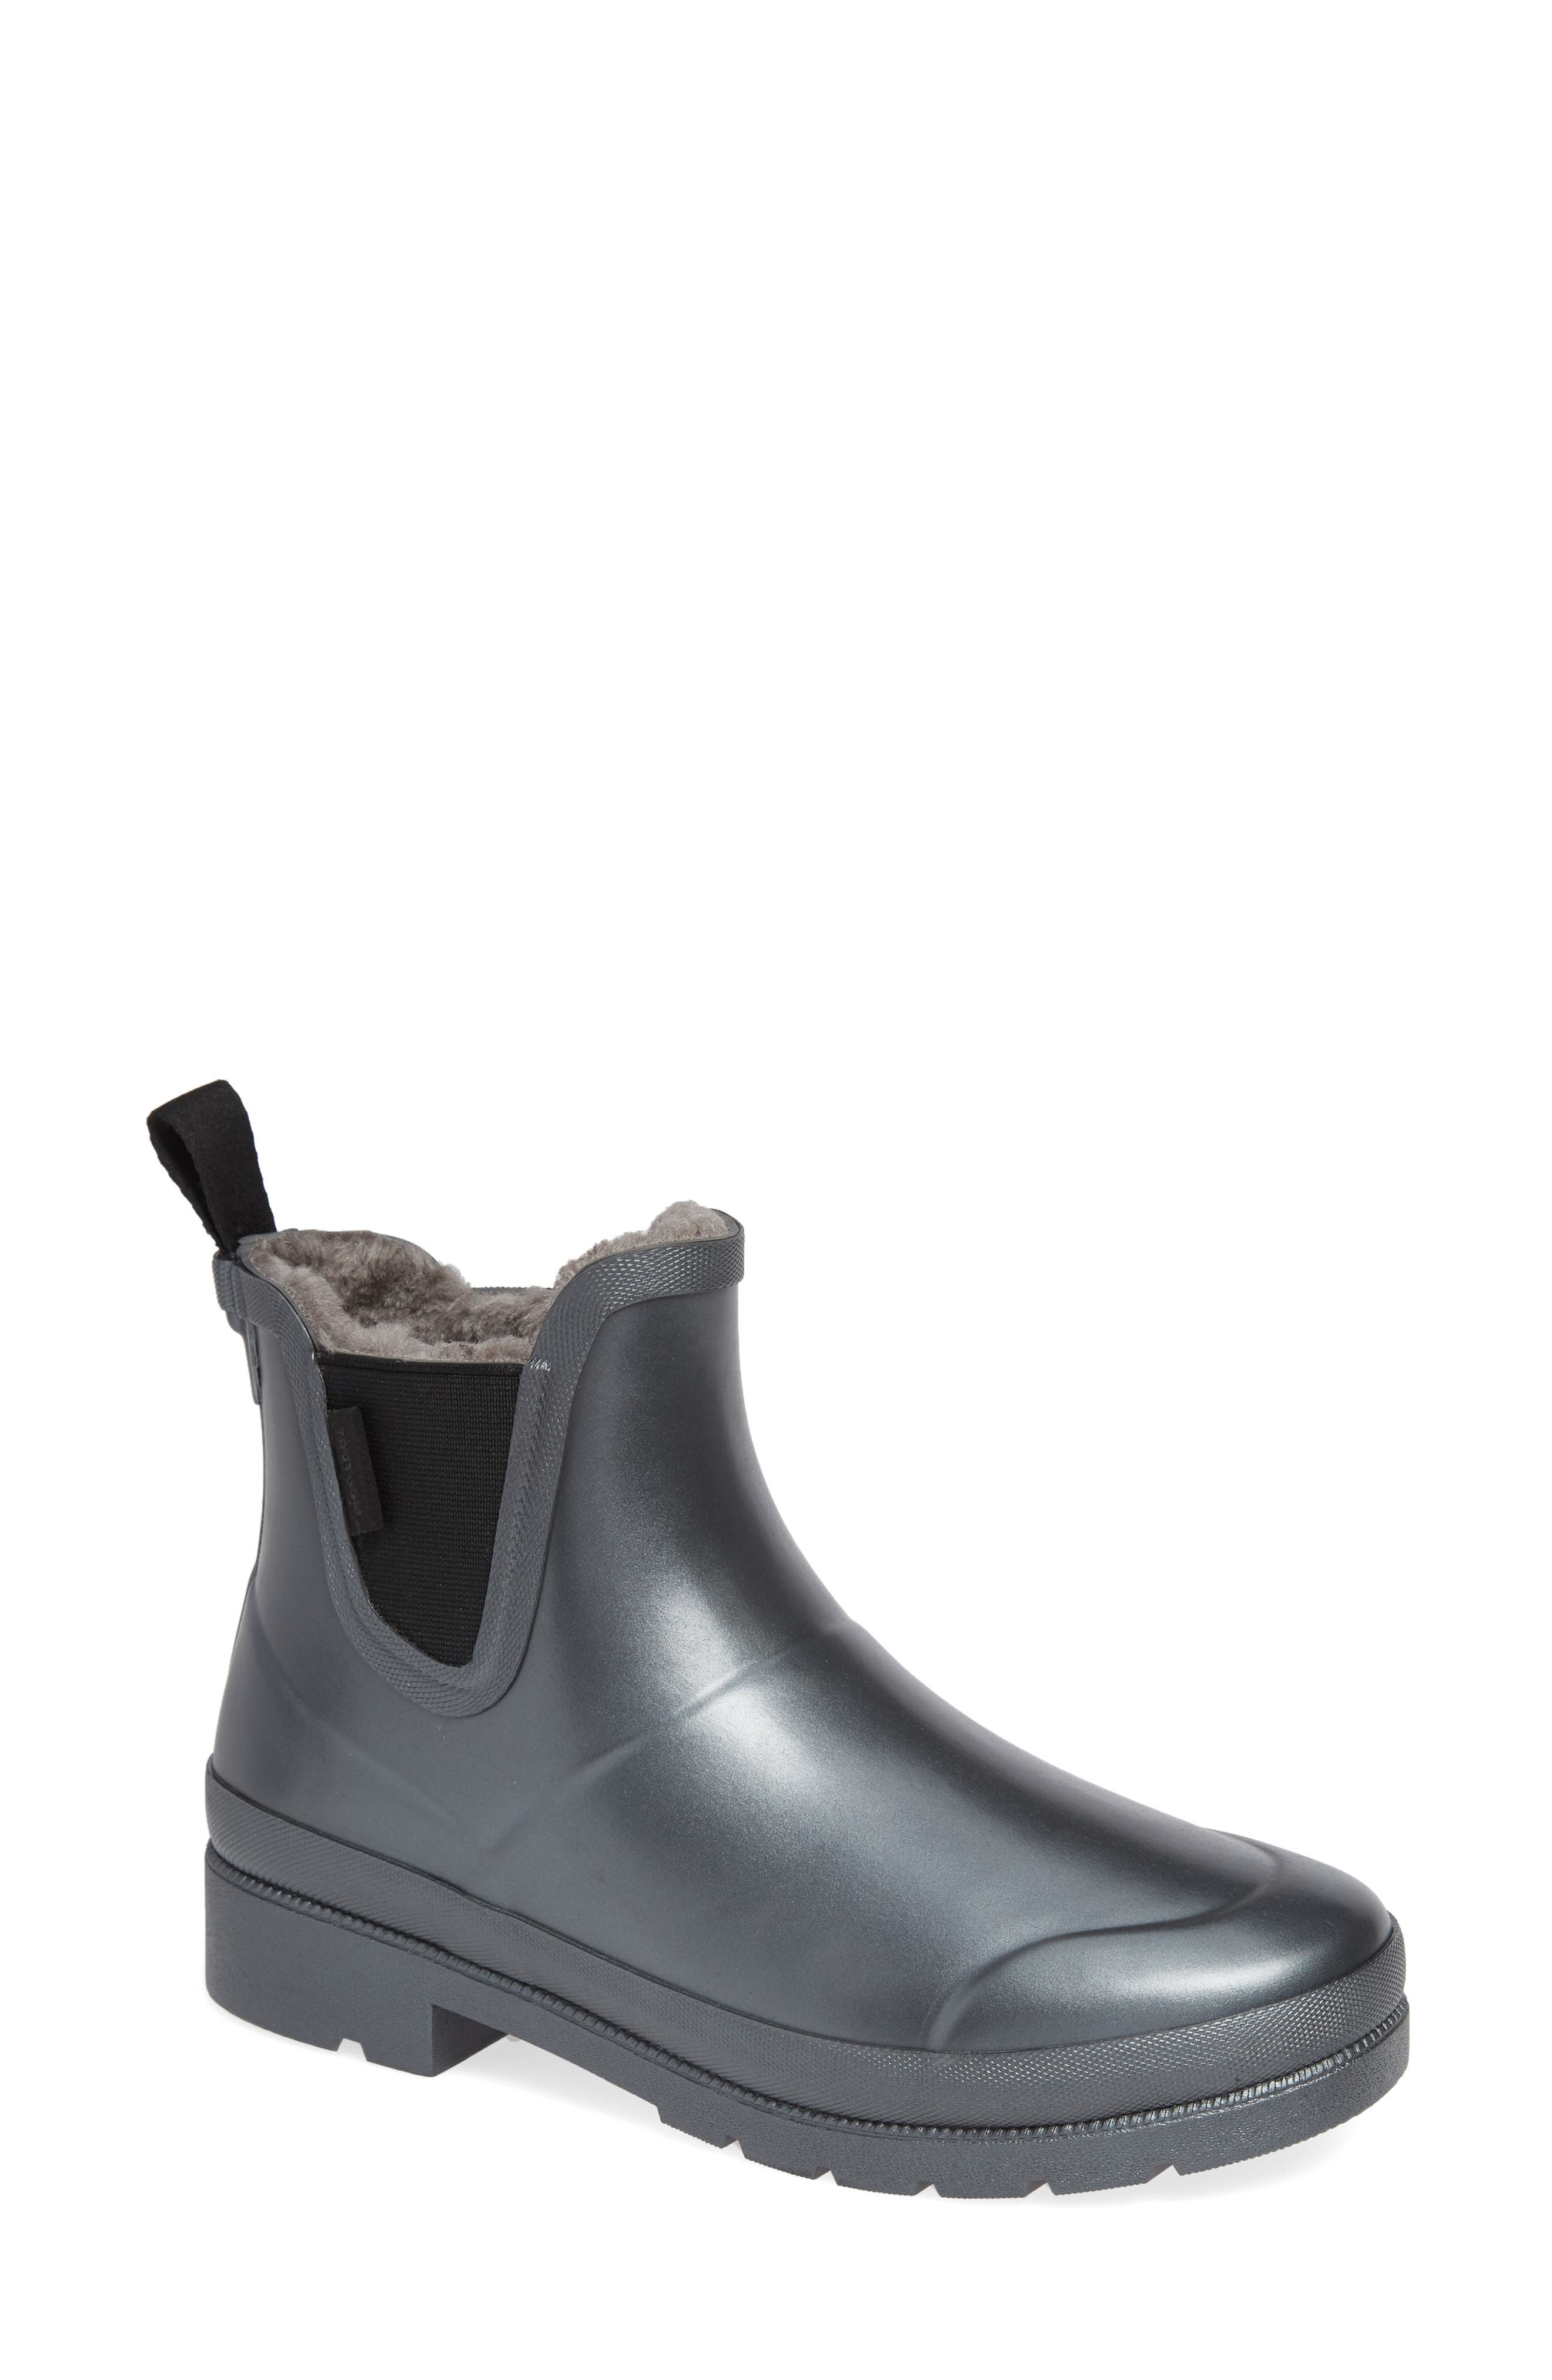 Chelsea Rain Boot,                             Main thumbnail 1, color,                             PEWTER